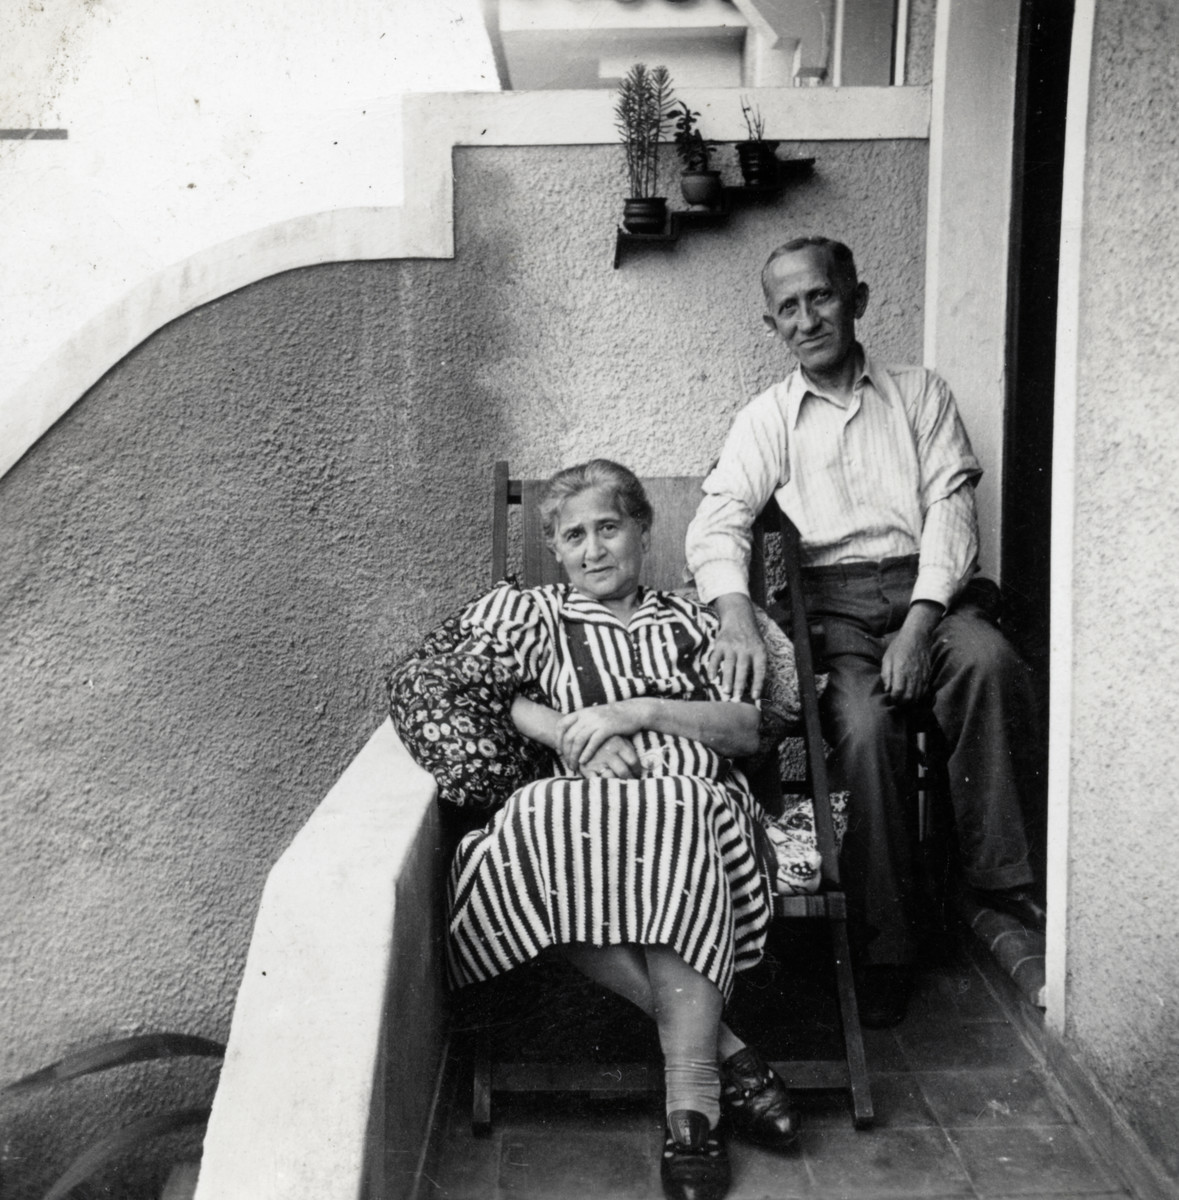 Zvi's maternal grandparents, Mr. and Mrs. Izaak Weissbrod, pose on their porch after immigrating to Brazil.